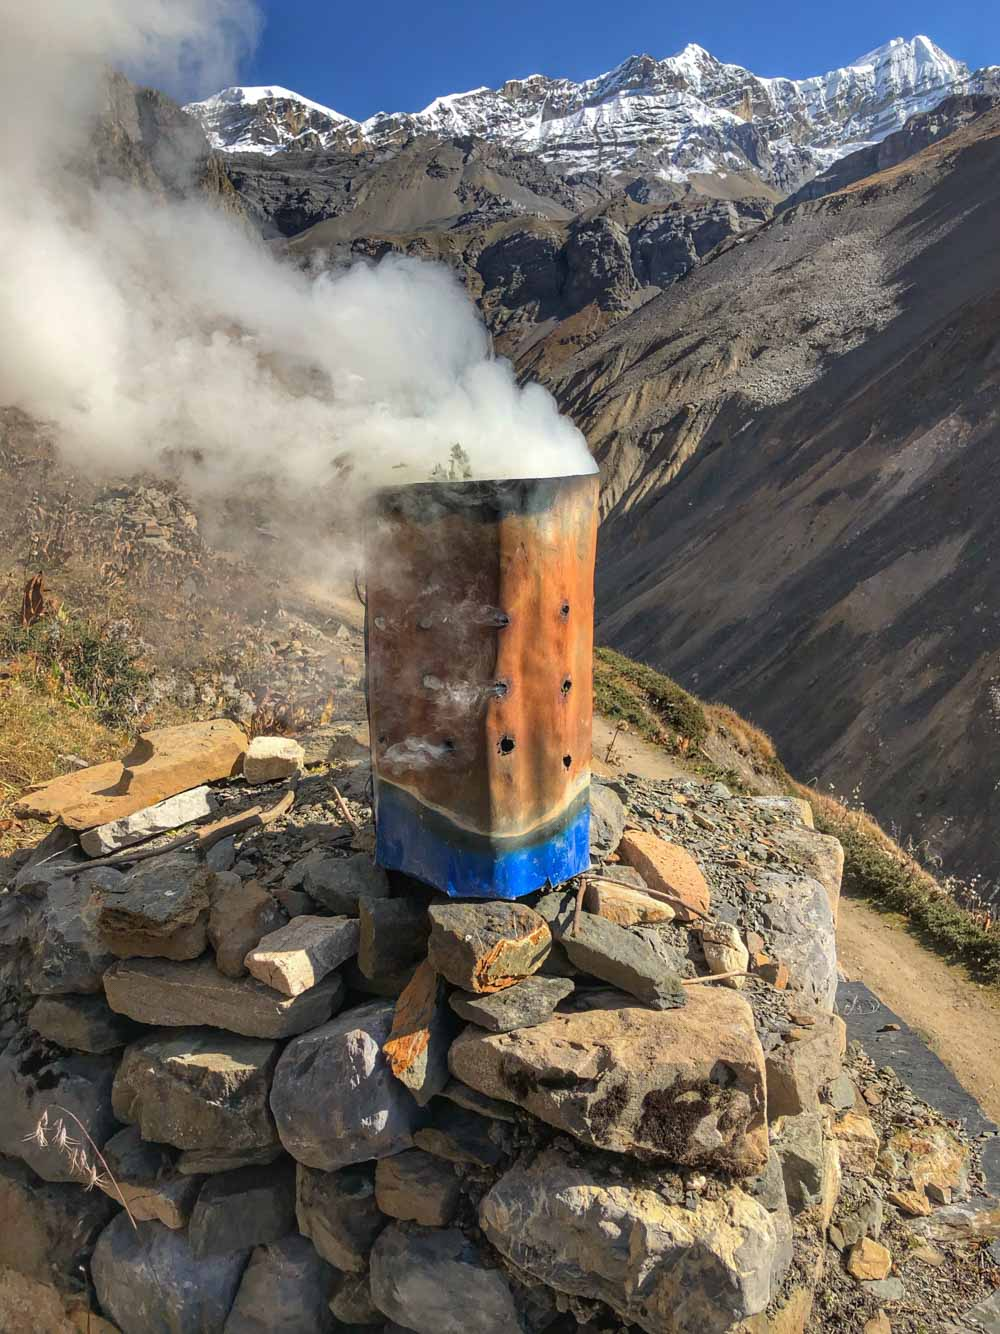 Mountain-offering Annapurna Circuit, Nepal - Part II: Apple Pie to Beyond Acclimatisation